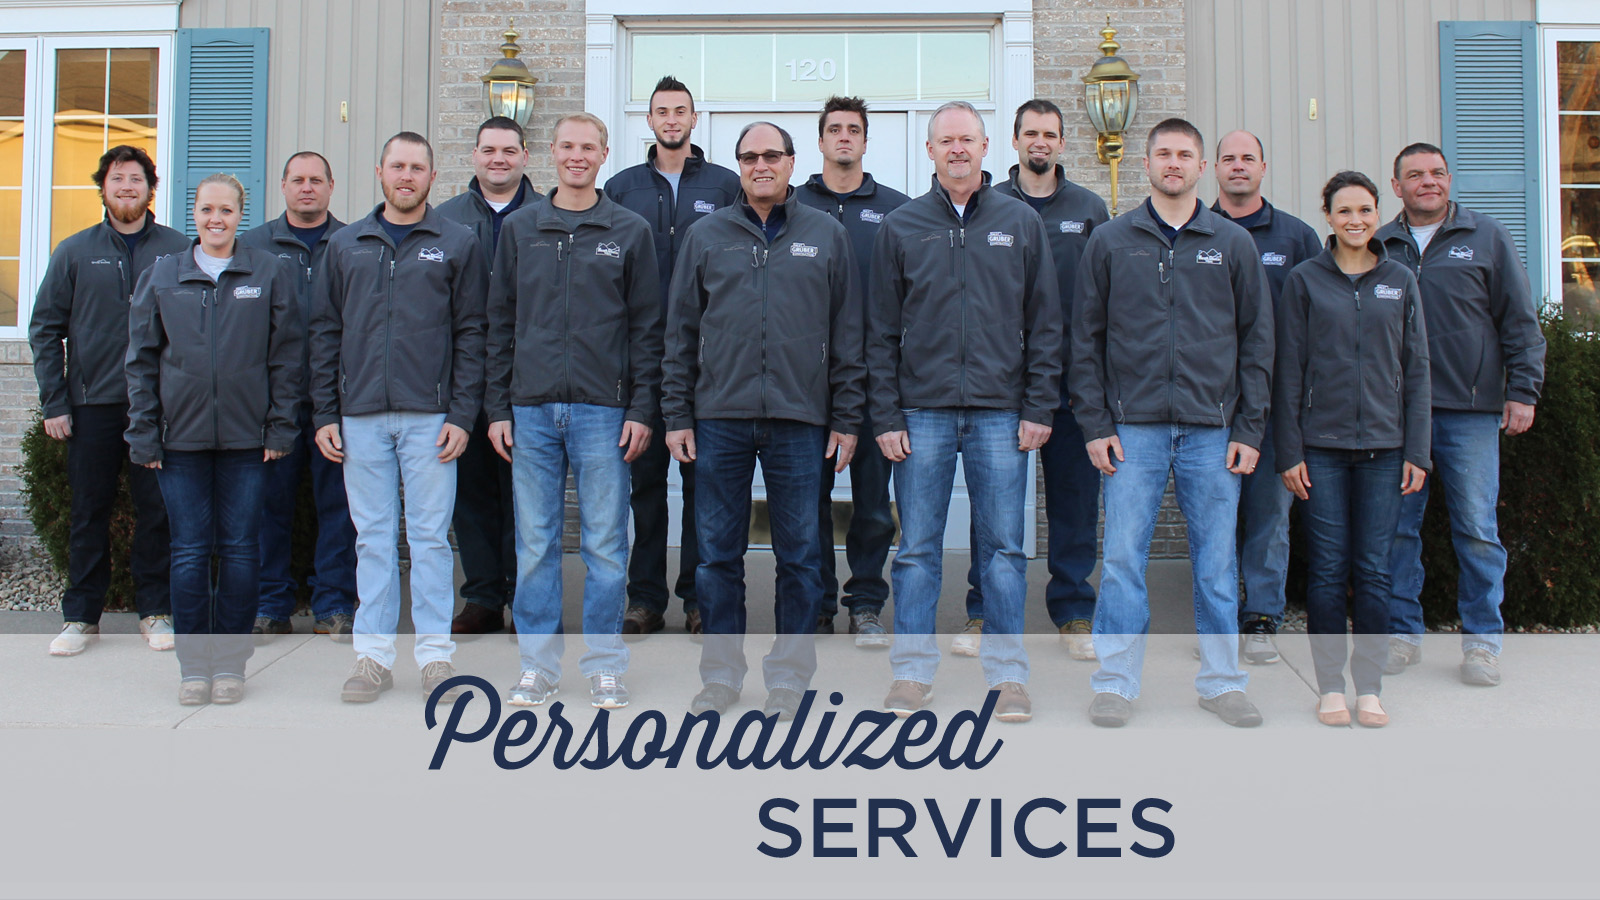 Dale Gruber Construction - Personalized Services